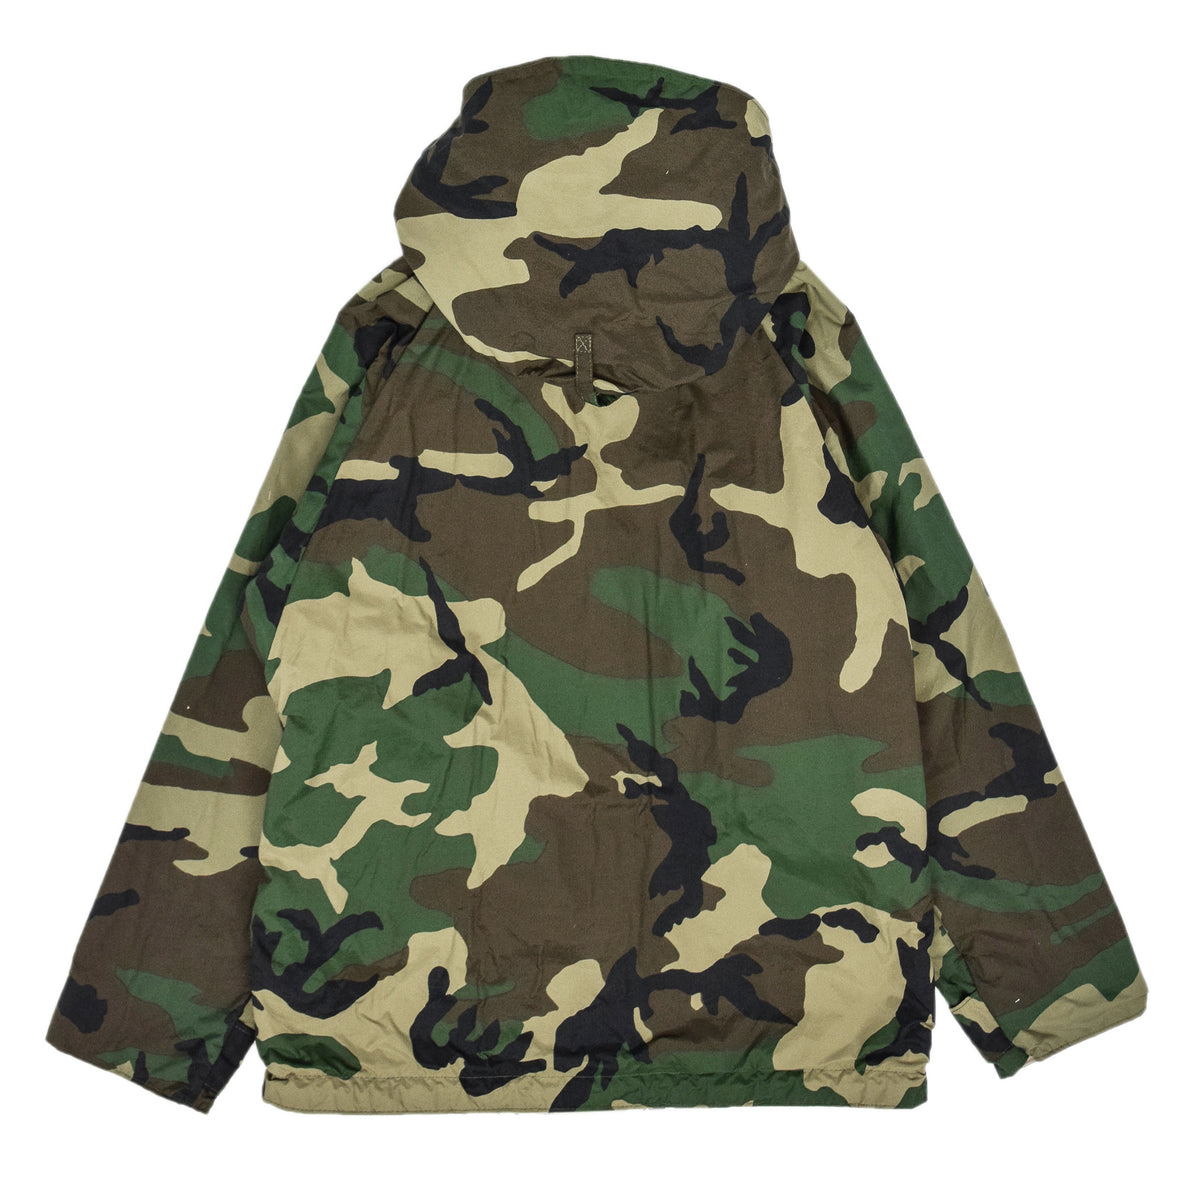 Vintage Reversible Military Hooded Desert & Woodland Camouflage Jacket M back